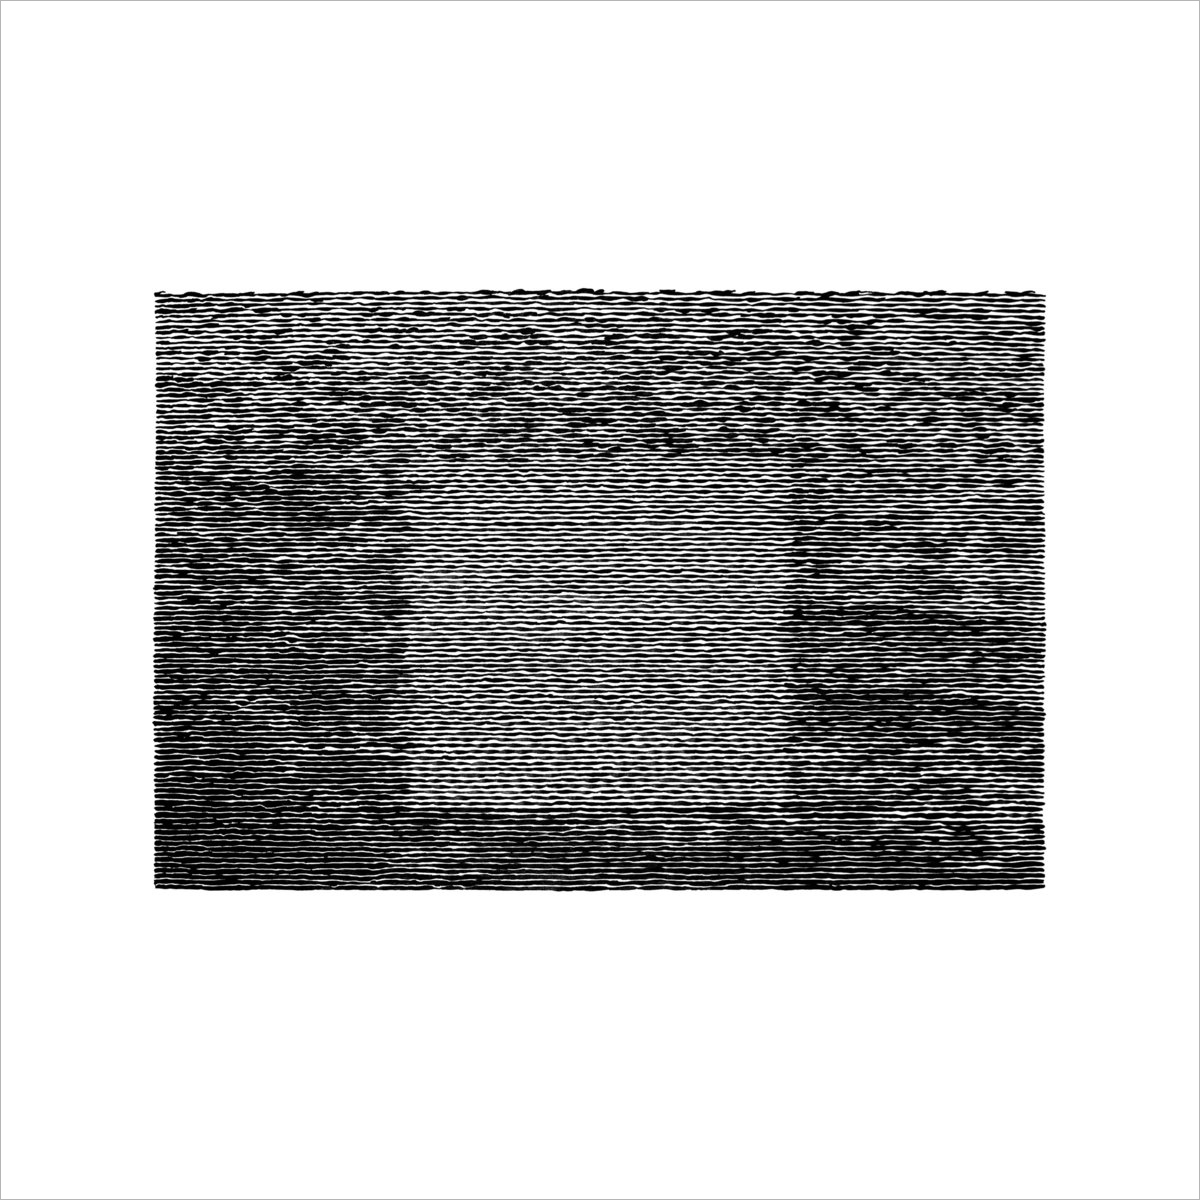 Grouper 『Grid of Points』 (kranky)